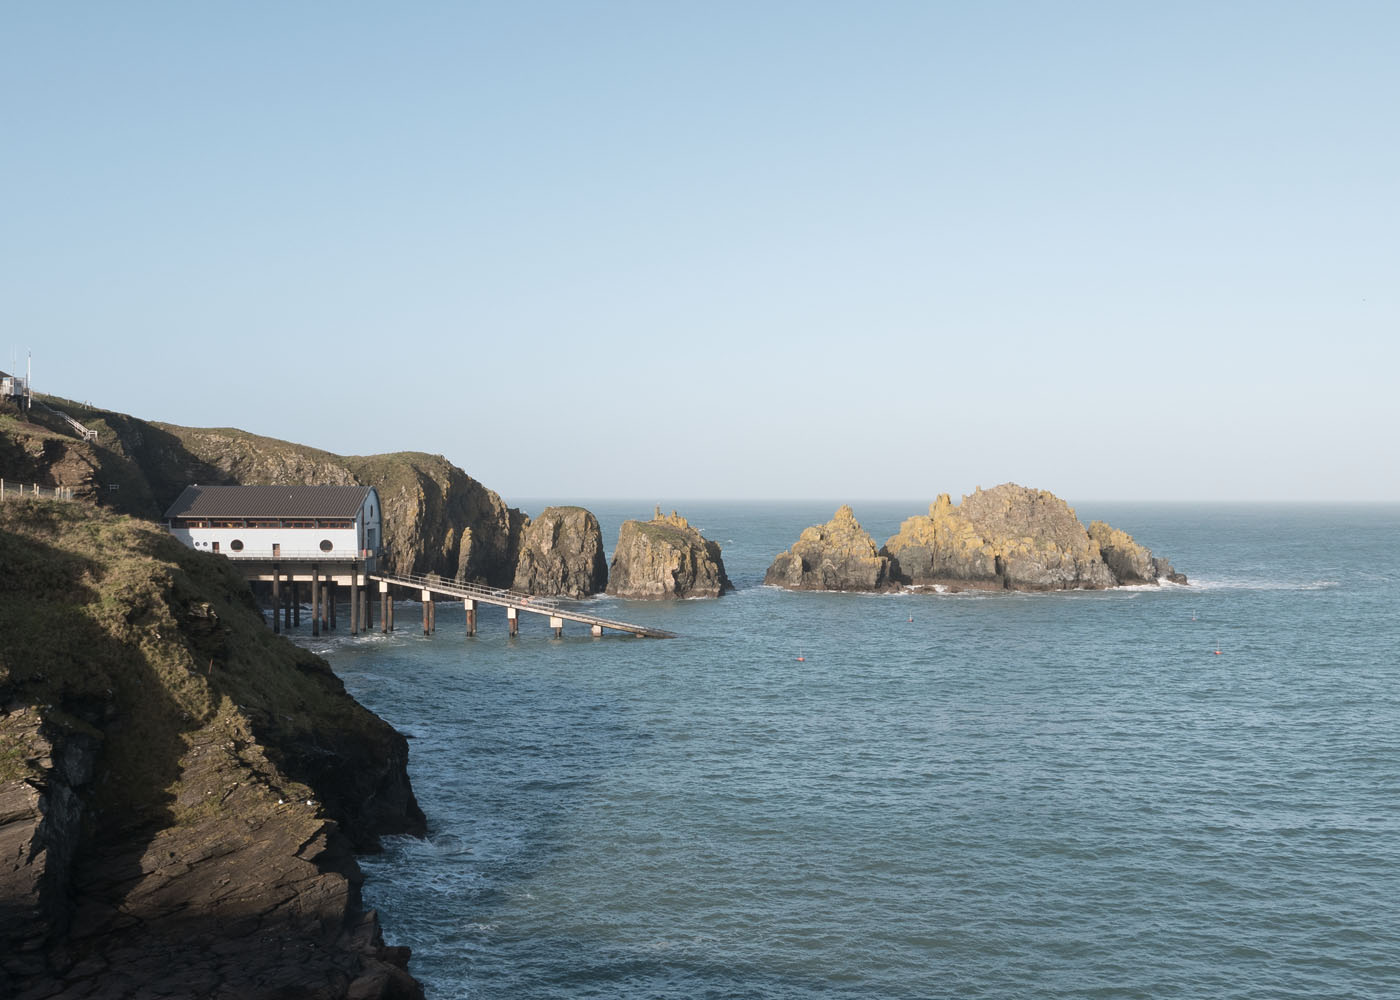 A view of the beautiful Padstow RNLI Lifeboat Station